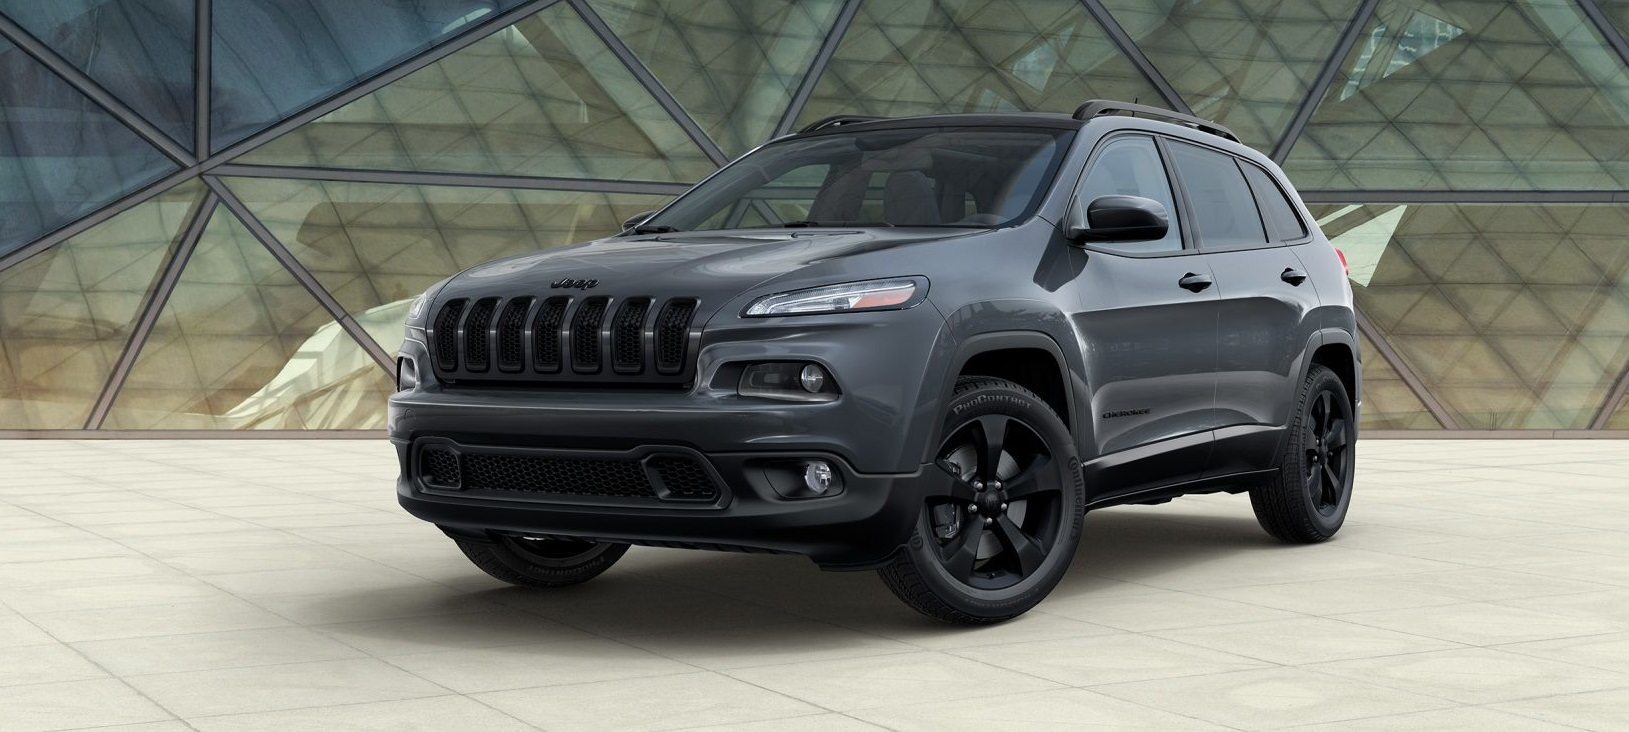 Dodge Dealership Greensboro Nc >> 2018 Jeep Cherokee High Altitude by Greensboro NC